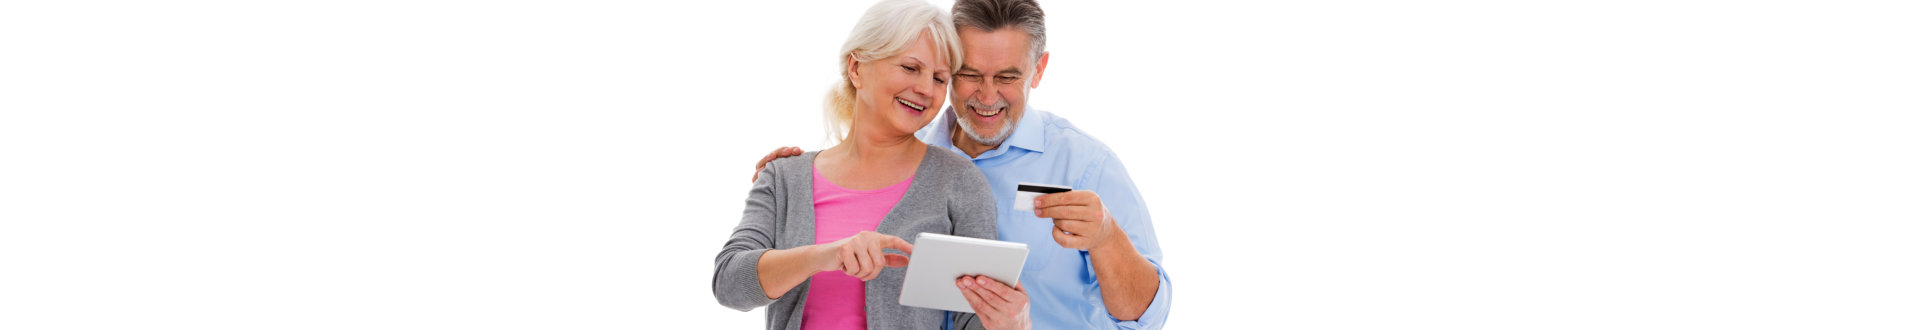 elderly couple smiling while holding a credit card